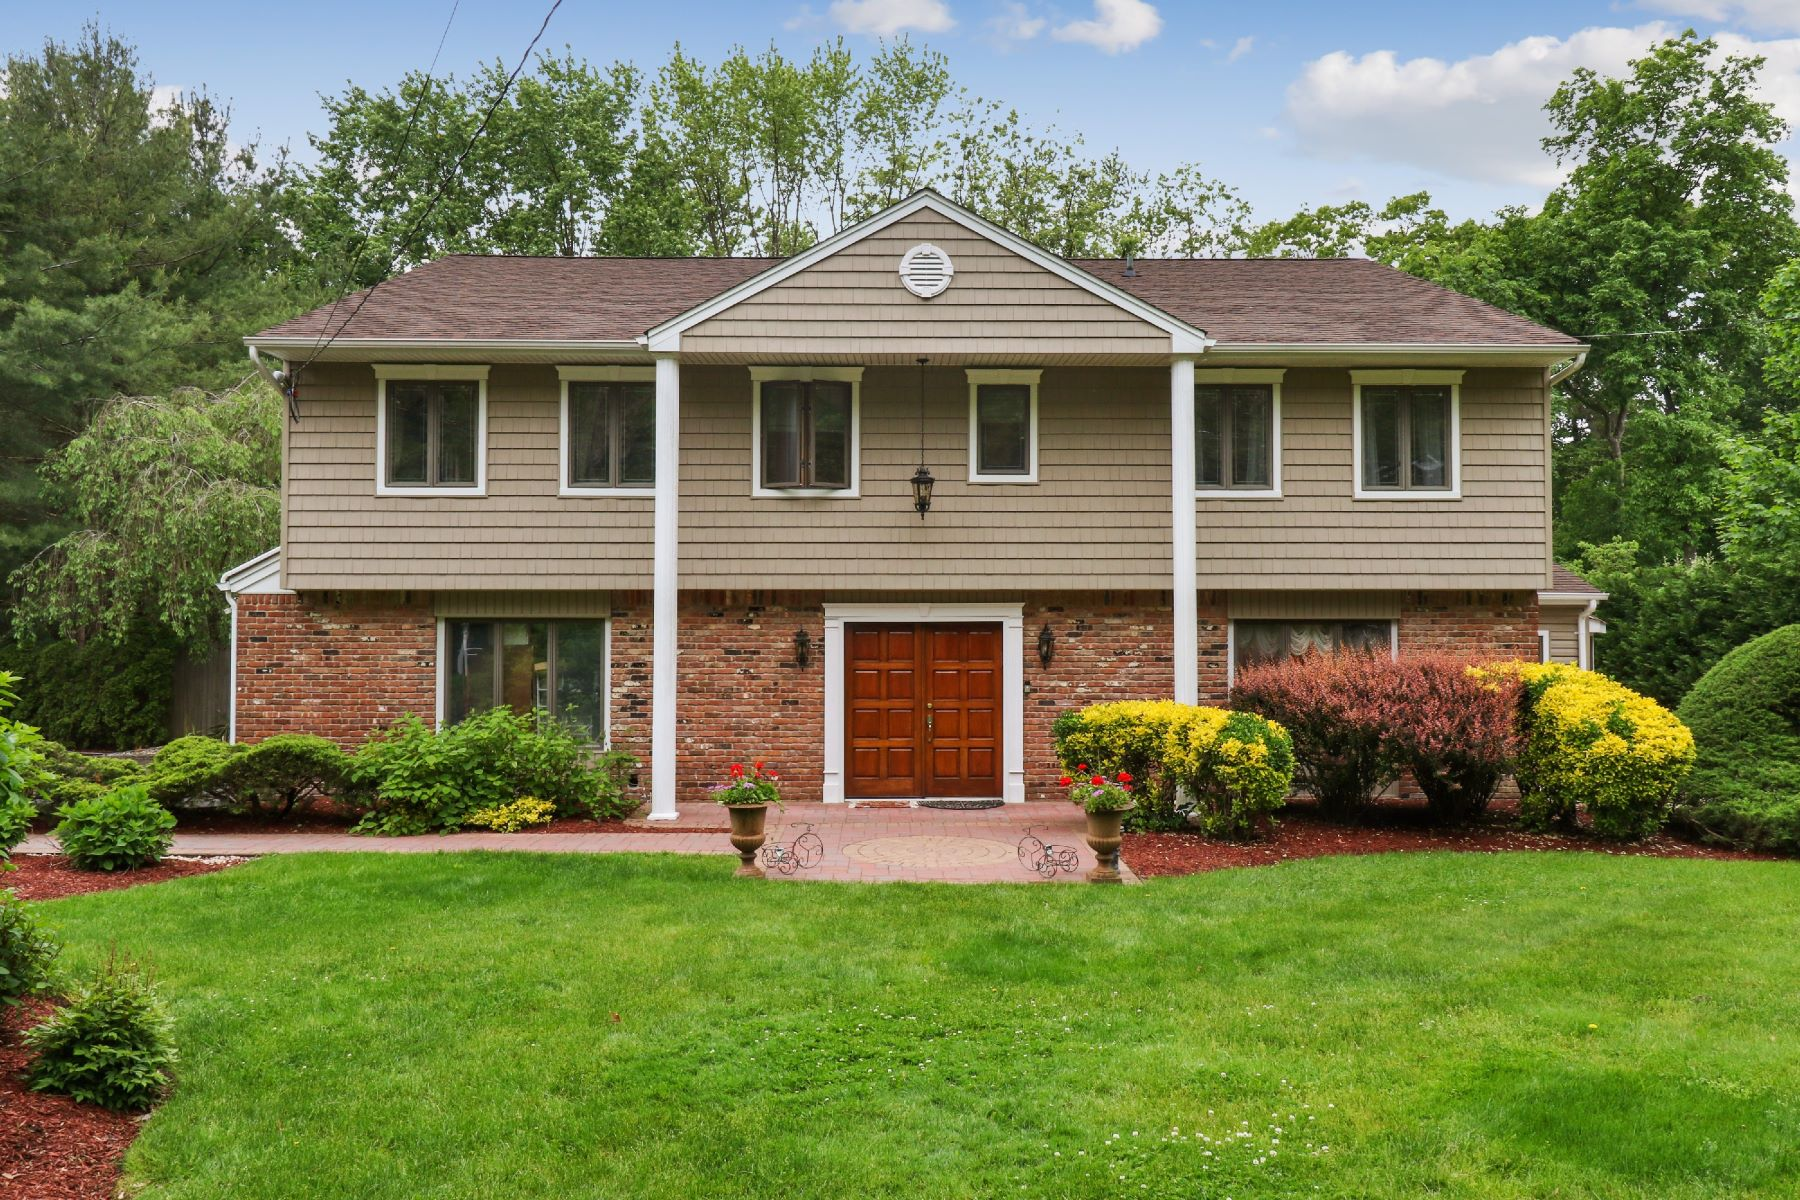 Single Family Homes for Sale at Dix Hills 4 Norma Ln Dix Hills, New York 11746 United States